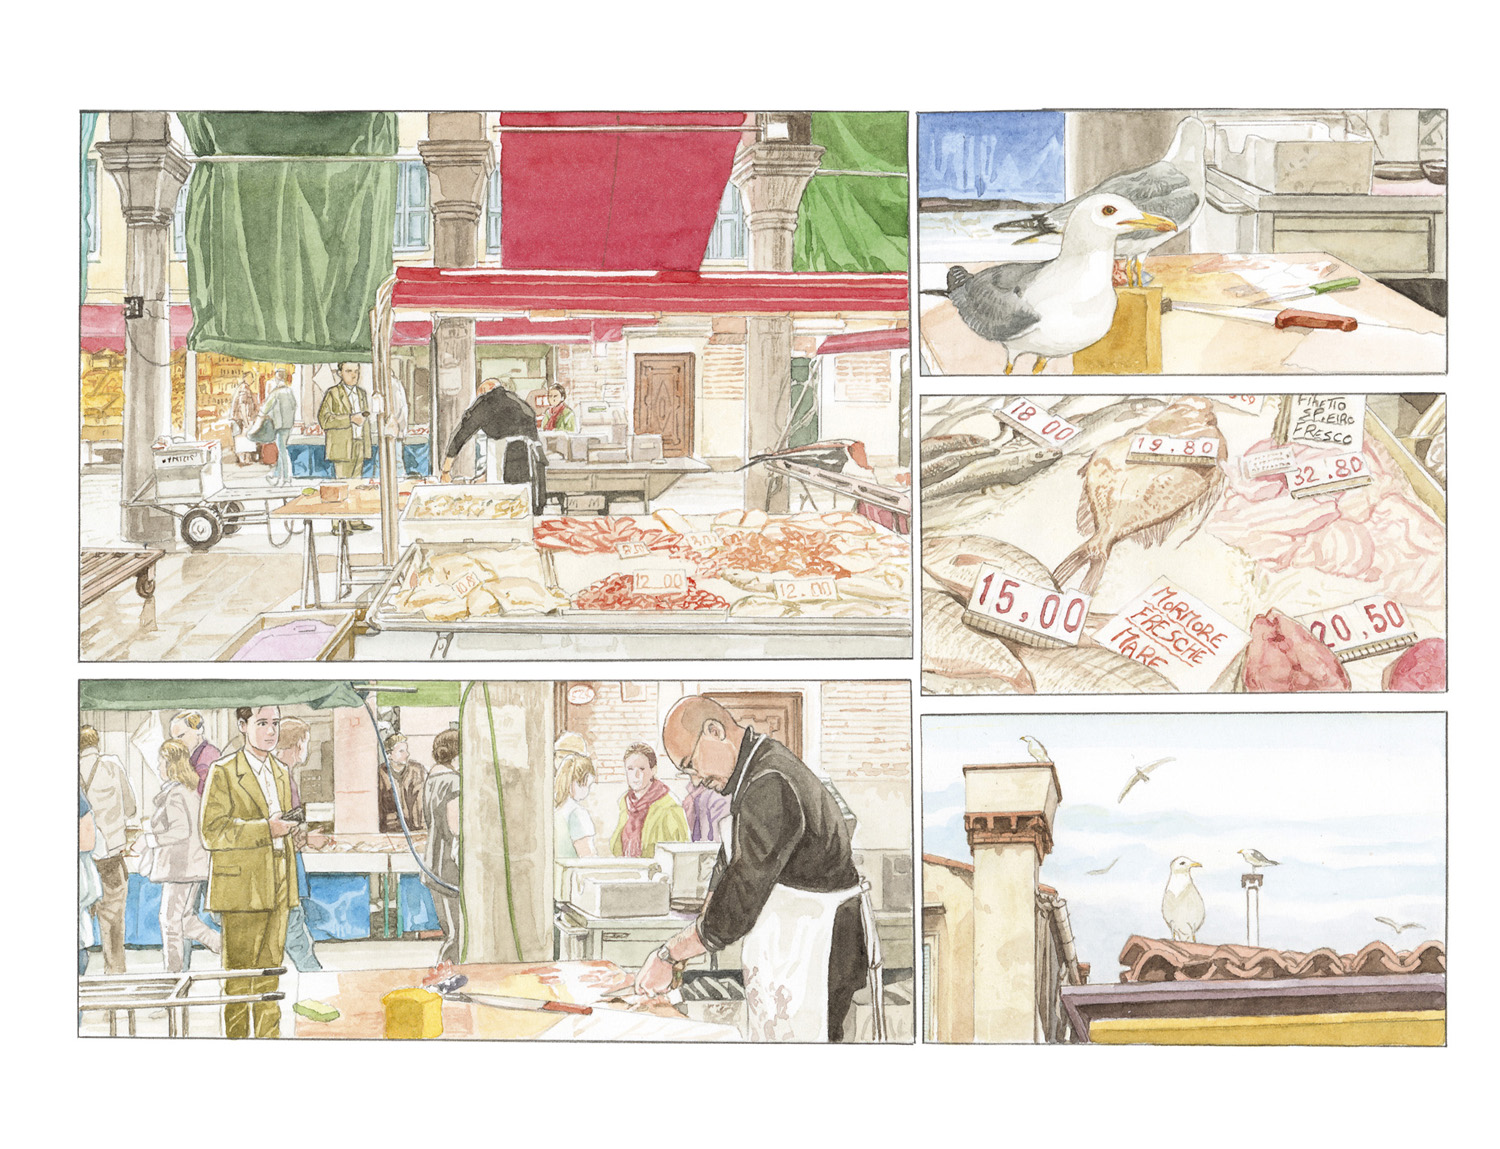 Louis Vuitton Travel Book Venise, illustre par Jiro Taniguchi, 2014 : vues du marche du Rialto.